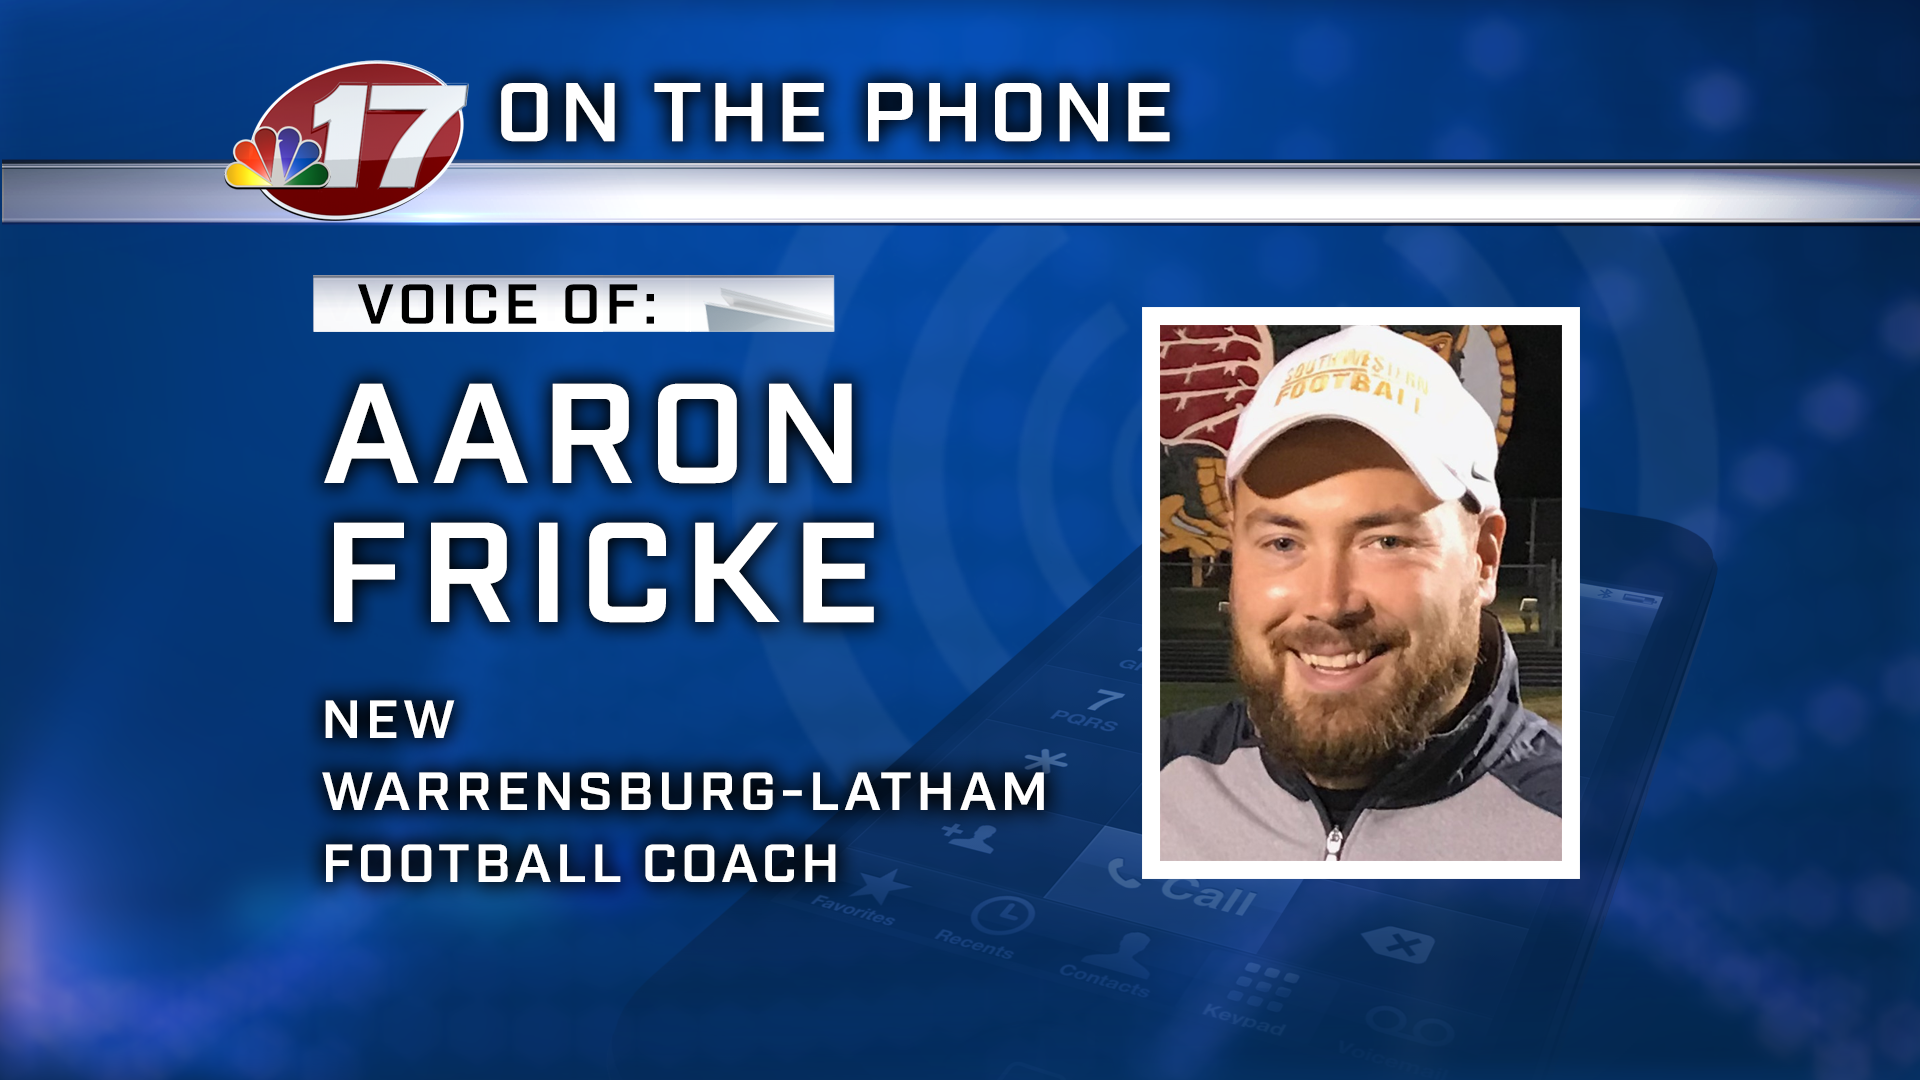 Aaron Fricke comes to Warrensburg-Latham after six years as head coach of Southwestern (Piasa).